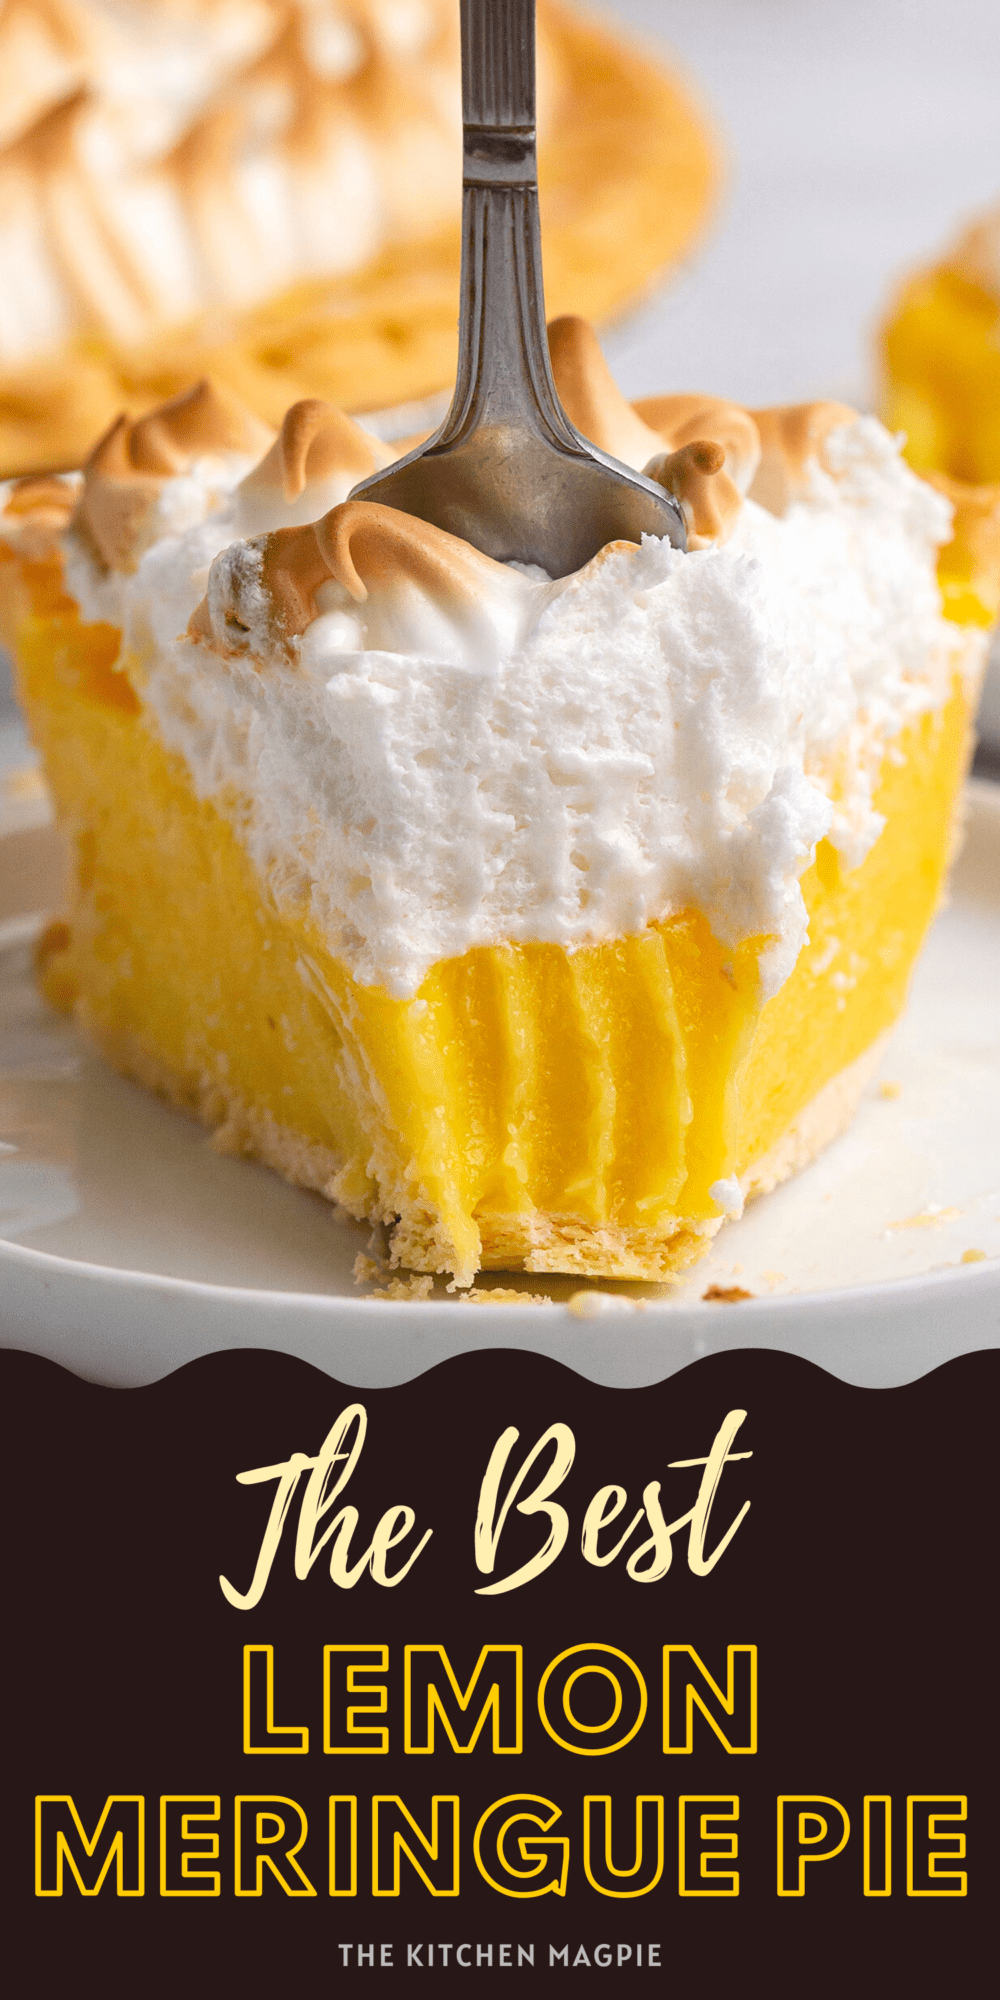 The perfect made from scratch lemon meringue pie recipe using real lemon, lots of butter & egg yolks to achieve a rich, very lemony pie!